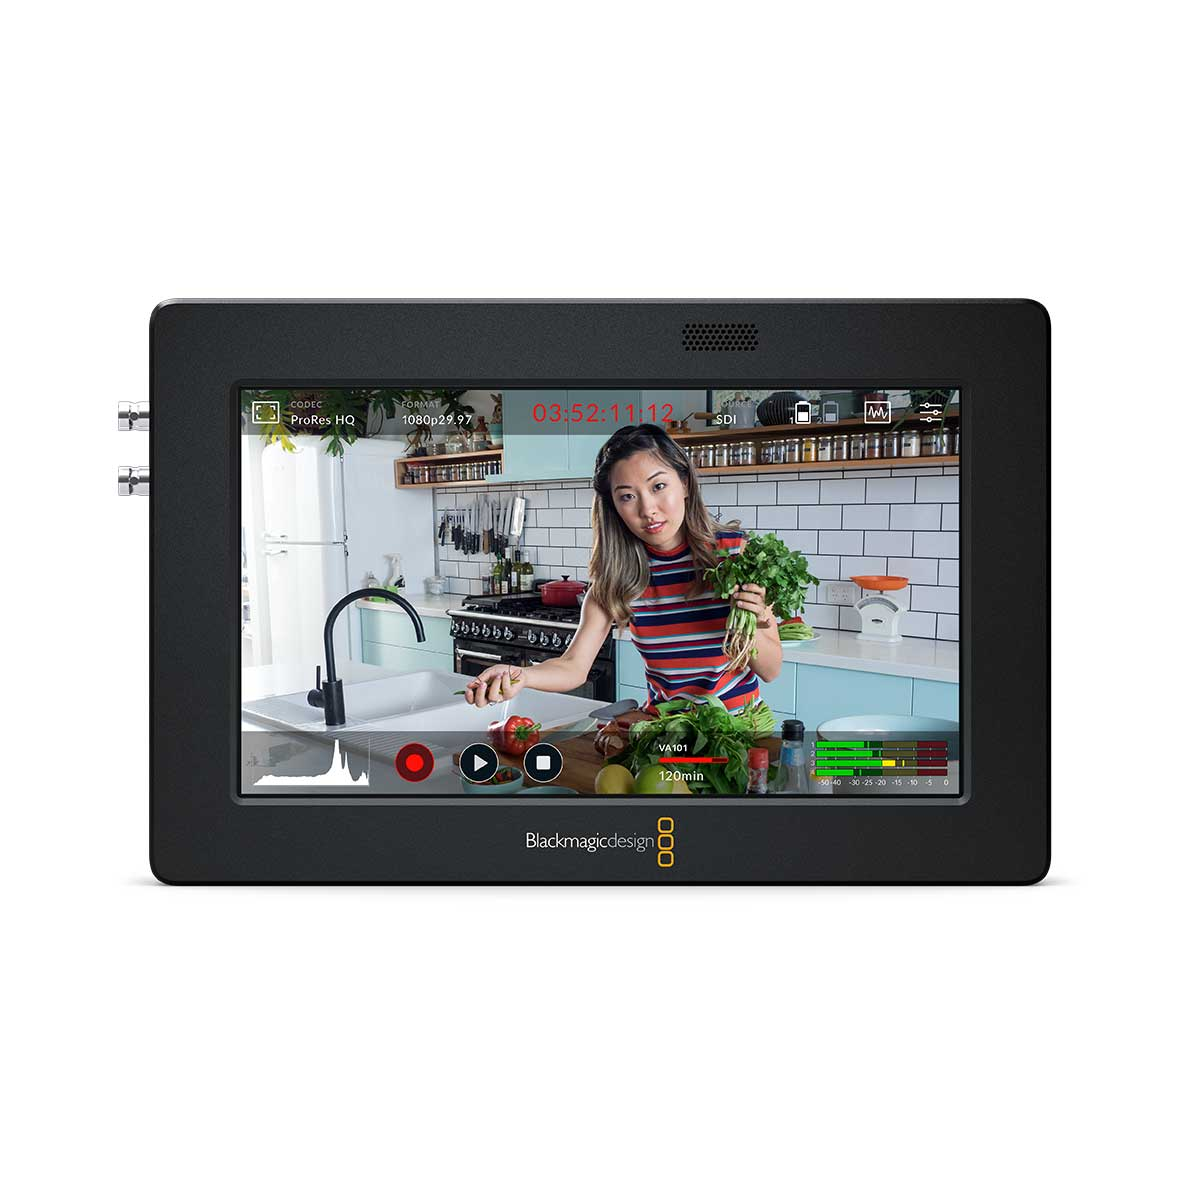 Blackmagic Design Video Assist 5 3G